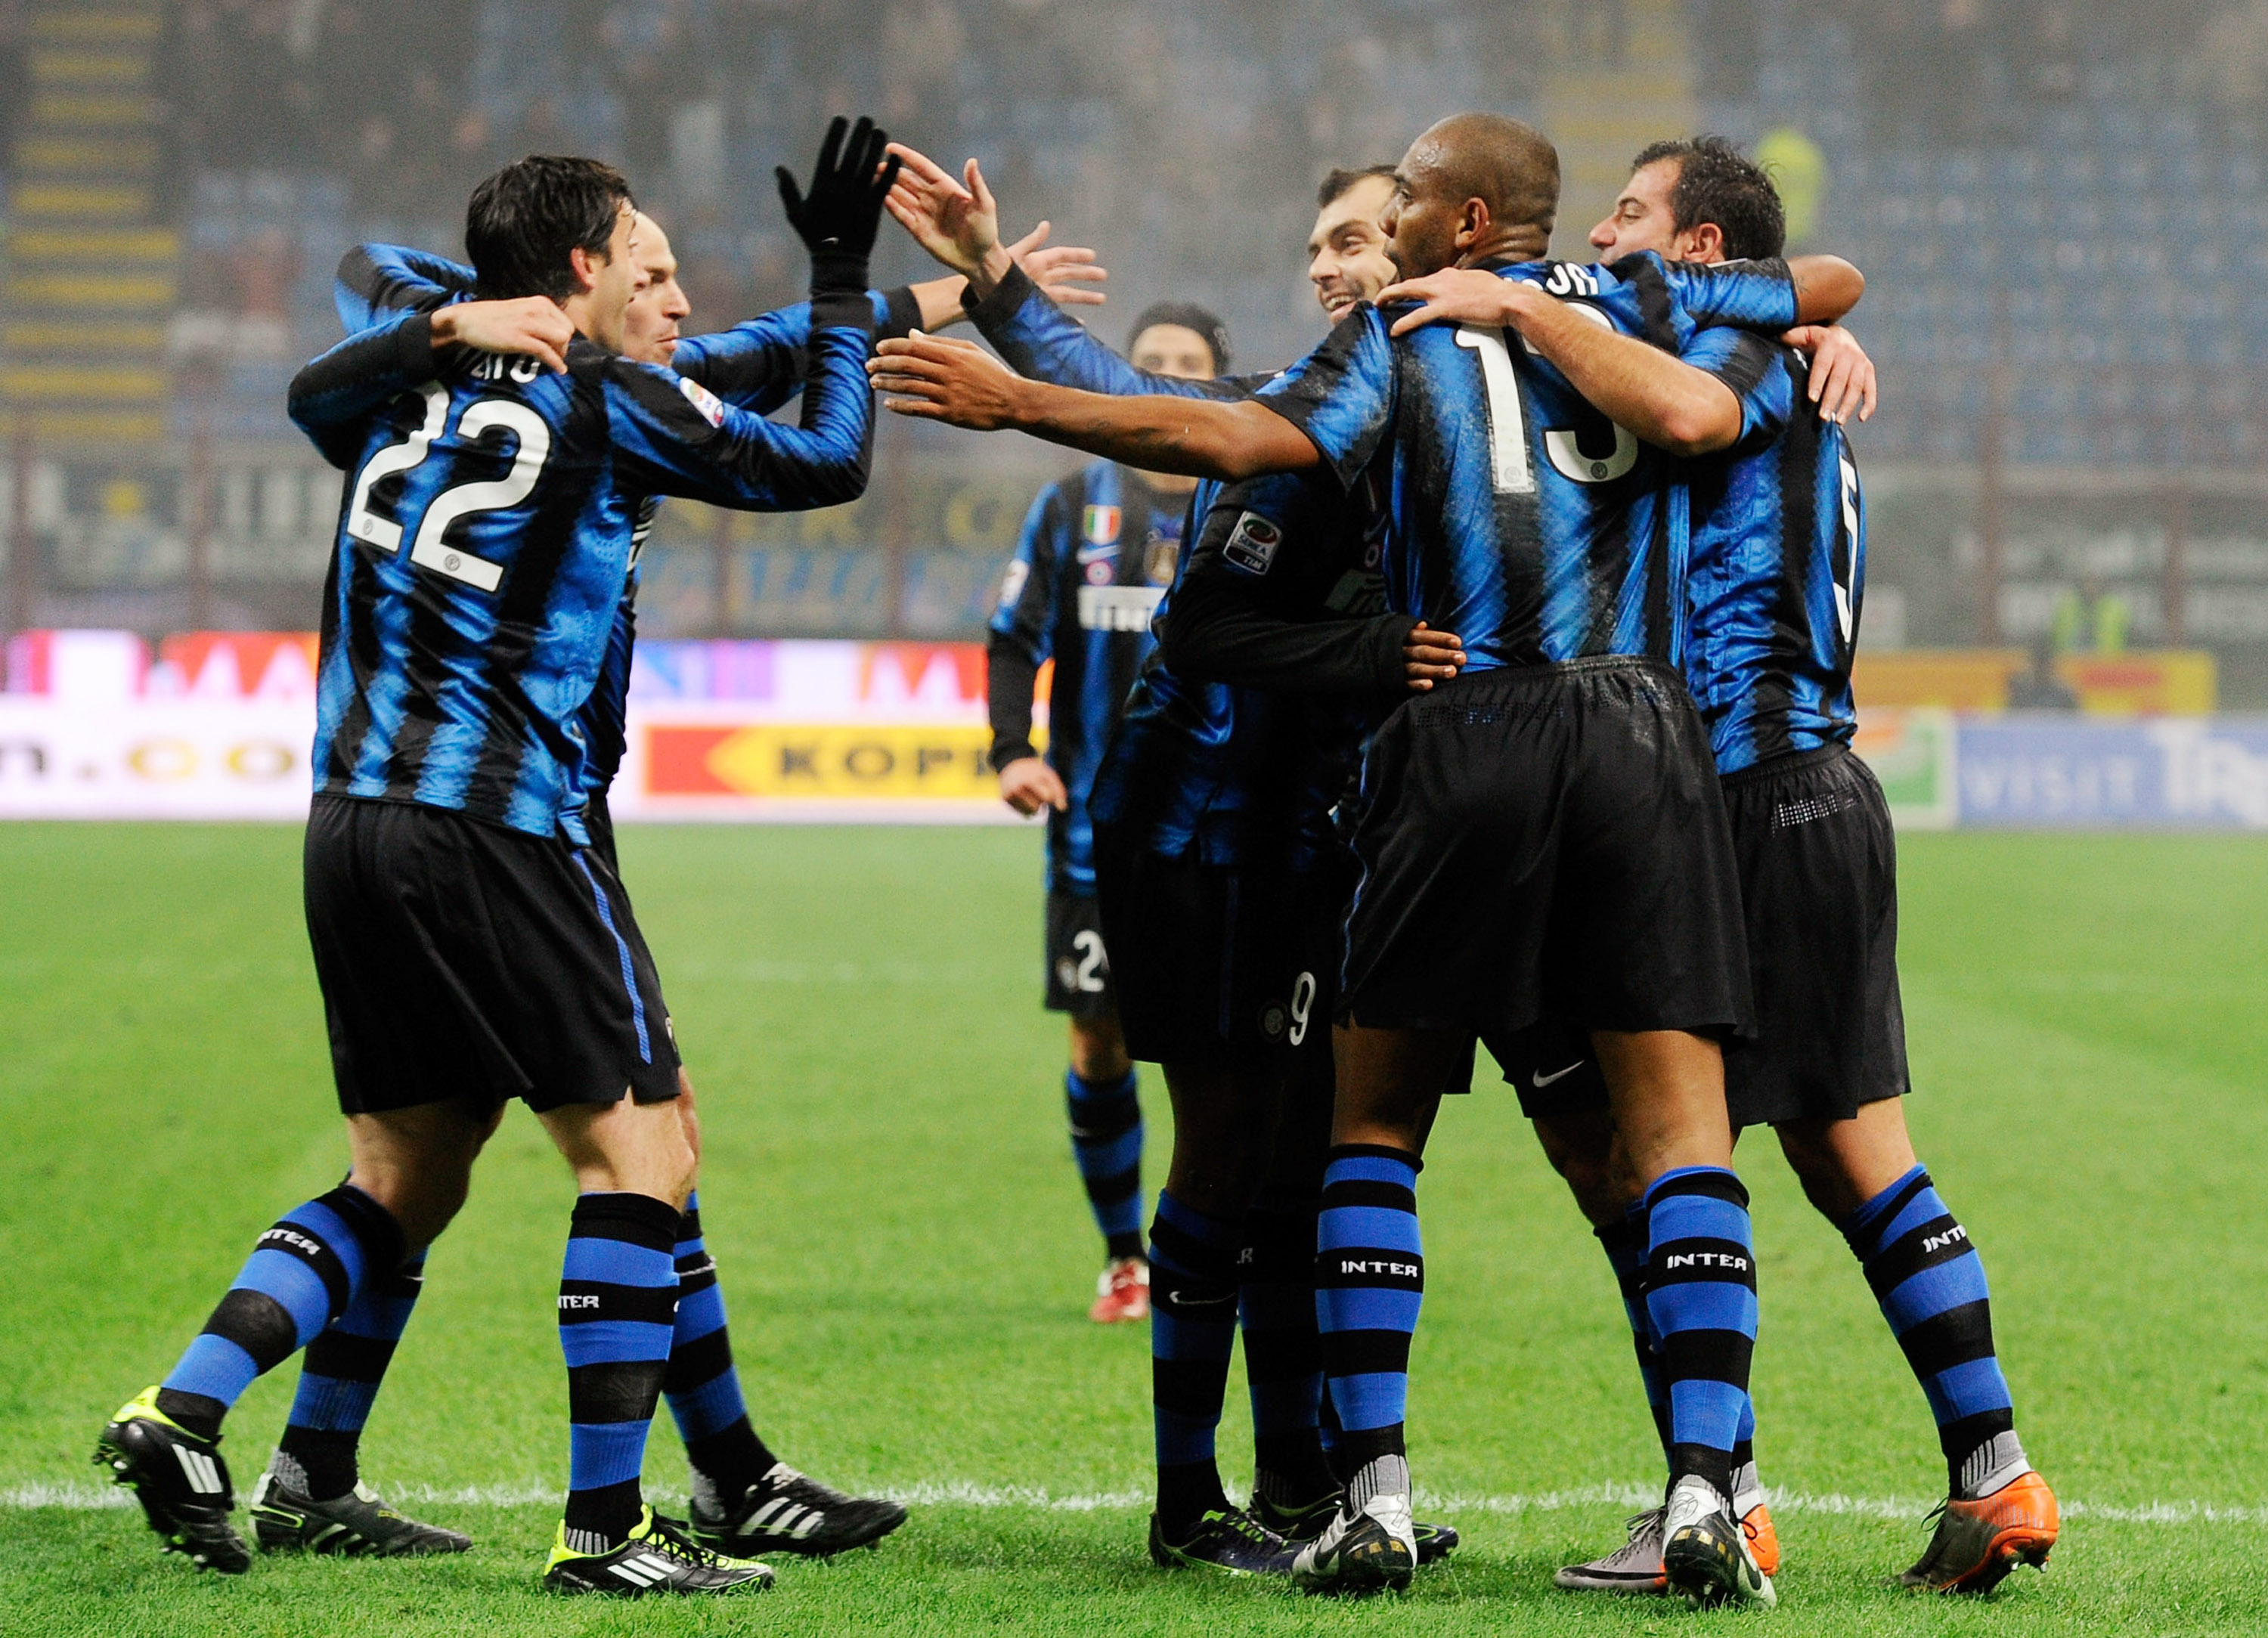 MILAN, ITALY - JANUARY 19:  Diego Alberto Milito of Inter Milan celebrates scoring the second goal during the Serie A match between Inter and Cesena at Stadio Giuseppe Meazza on January 19, 2011 in Milan, Italy.  (Photo by Claudio Villa/Getty Images)